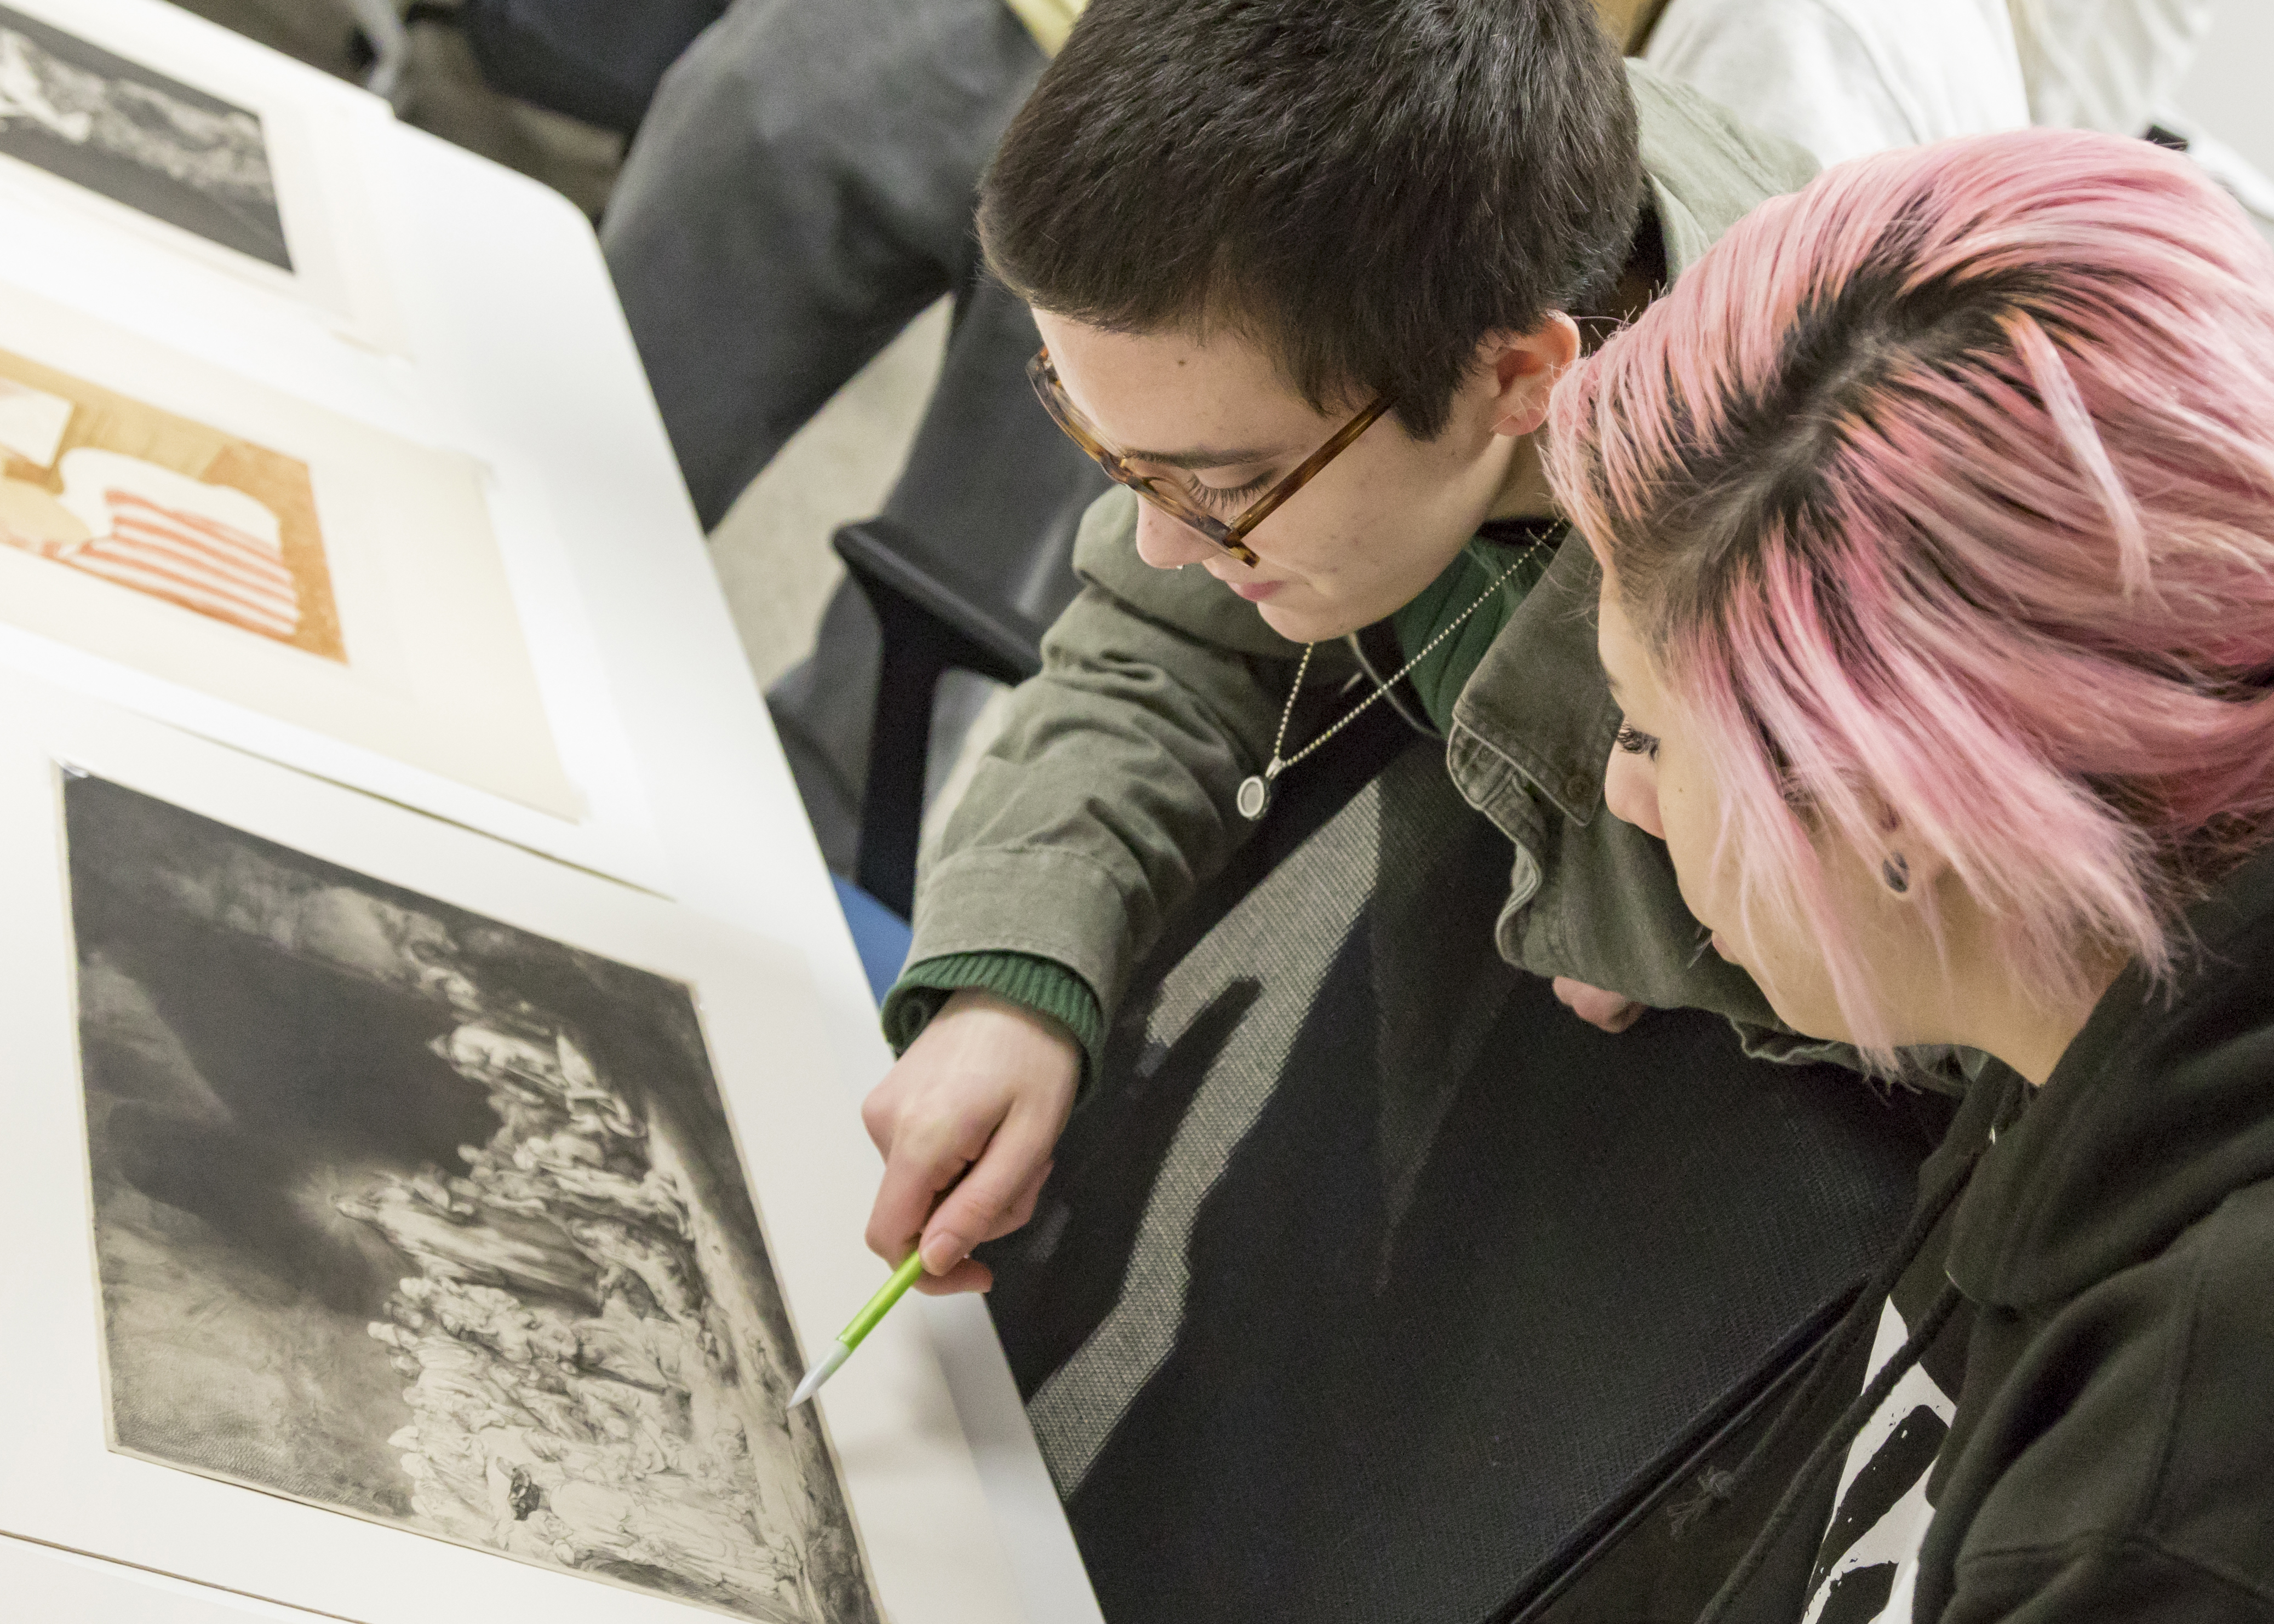 Image for Students examine works from the College's archives as part of an interdisciplinary course with faculty from Muhlenberg's History Department. Our curriculum approaches art with an interdisciplinary, interactive and international lens.